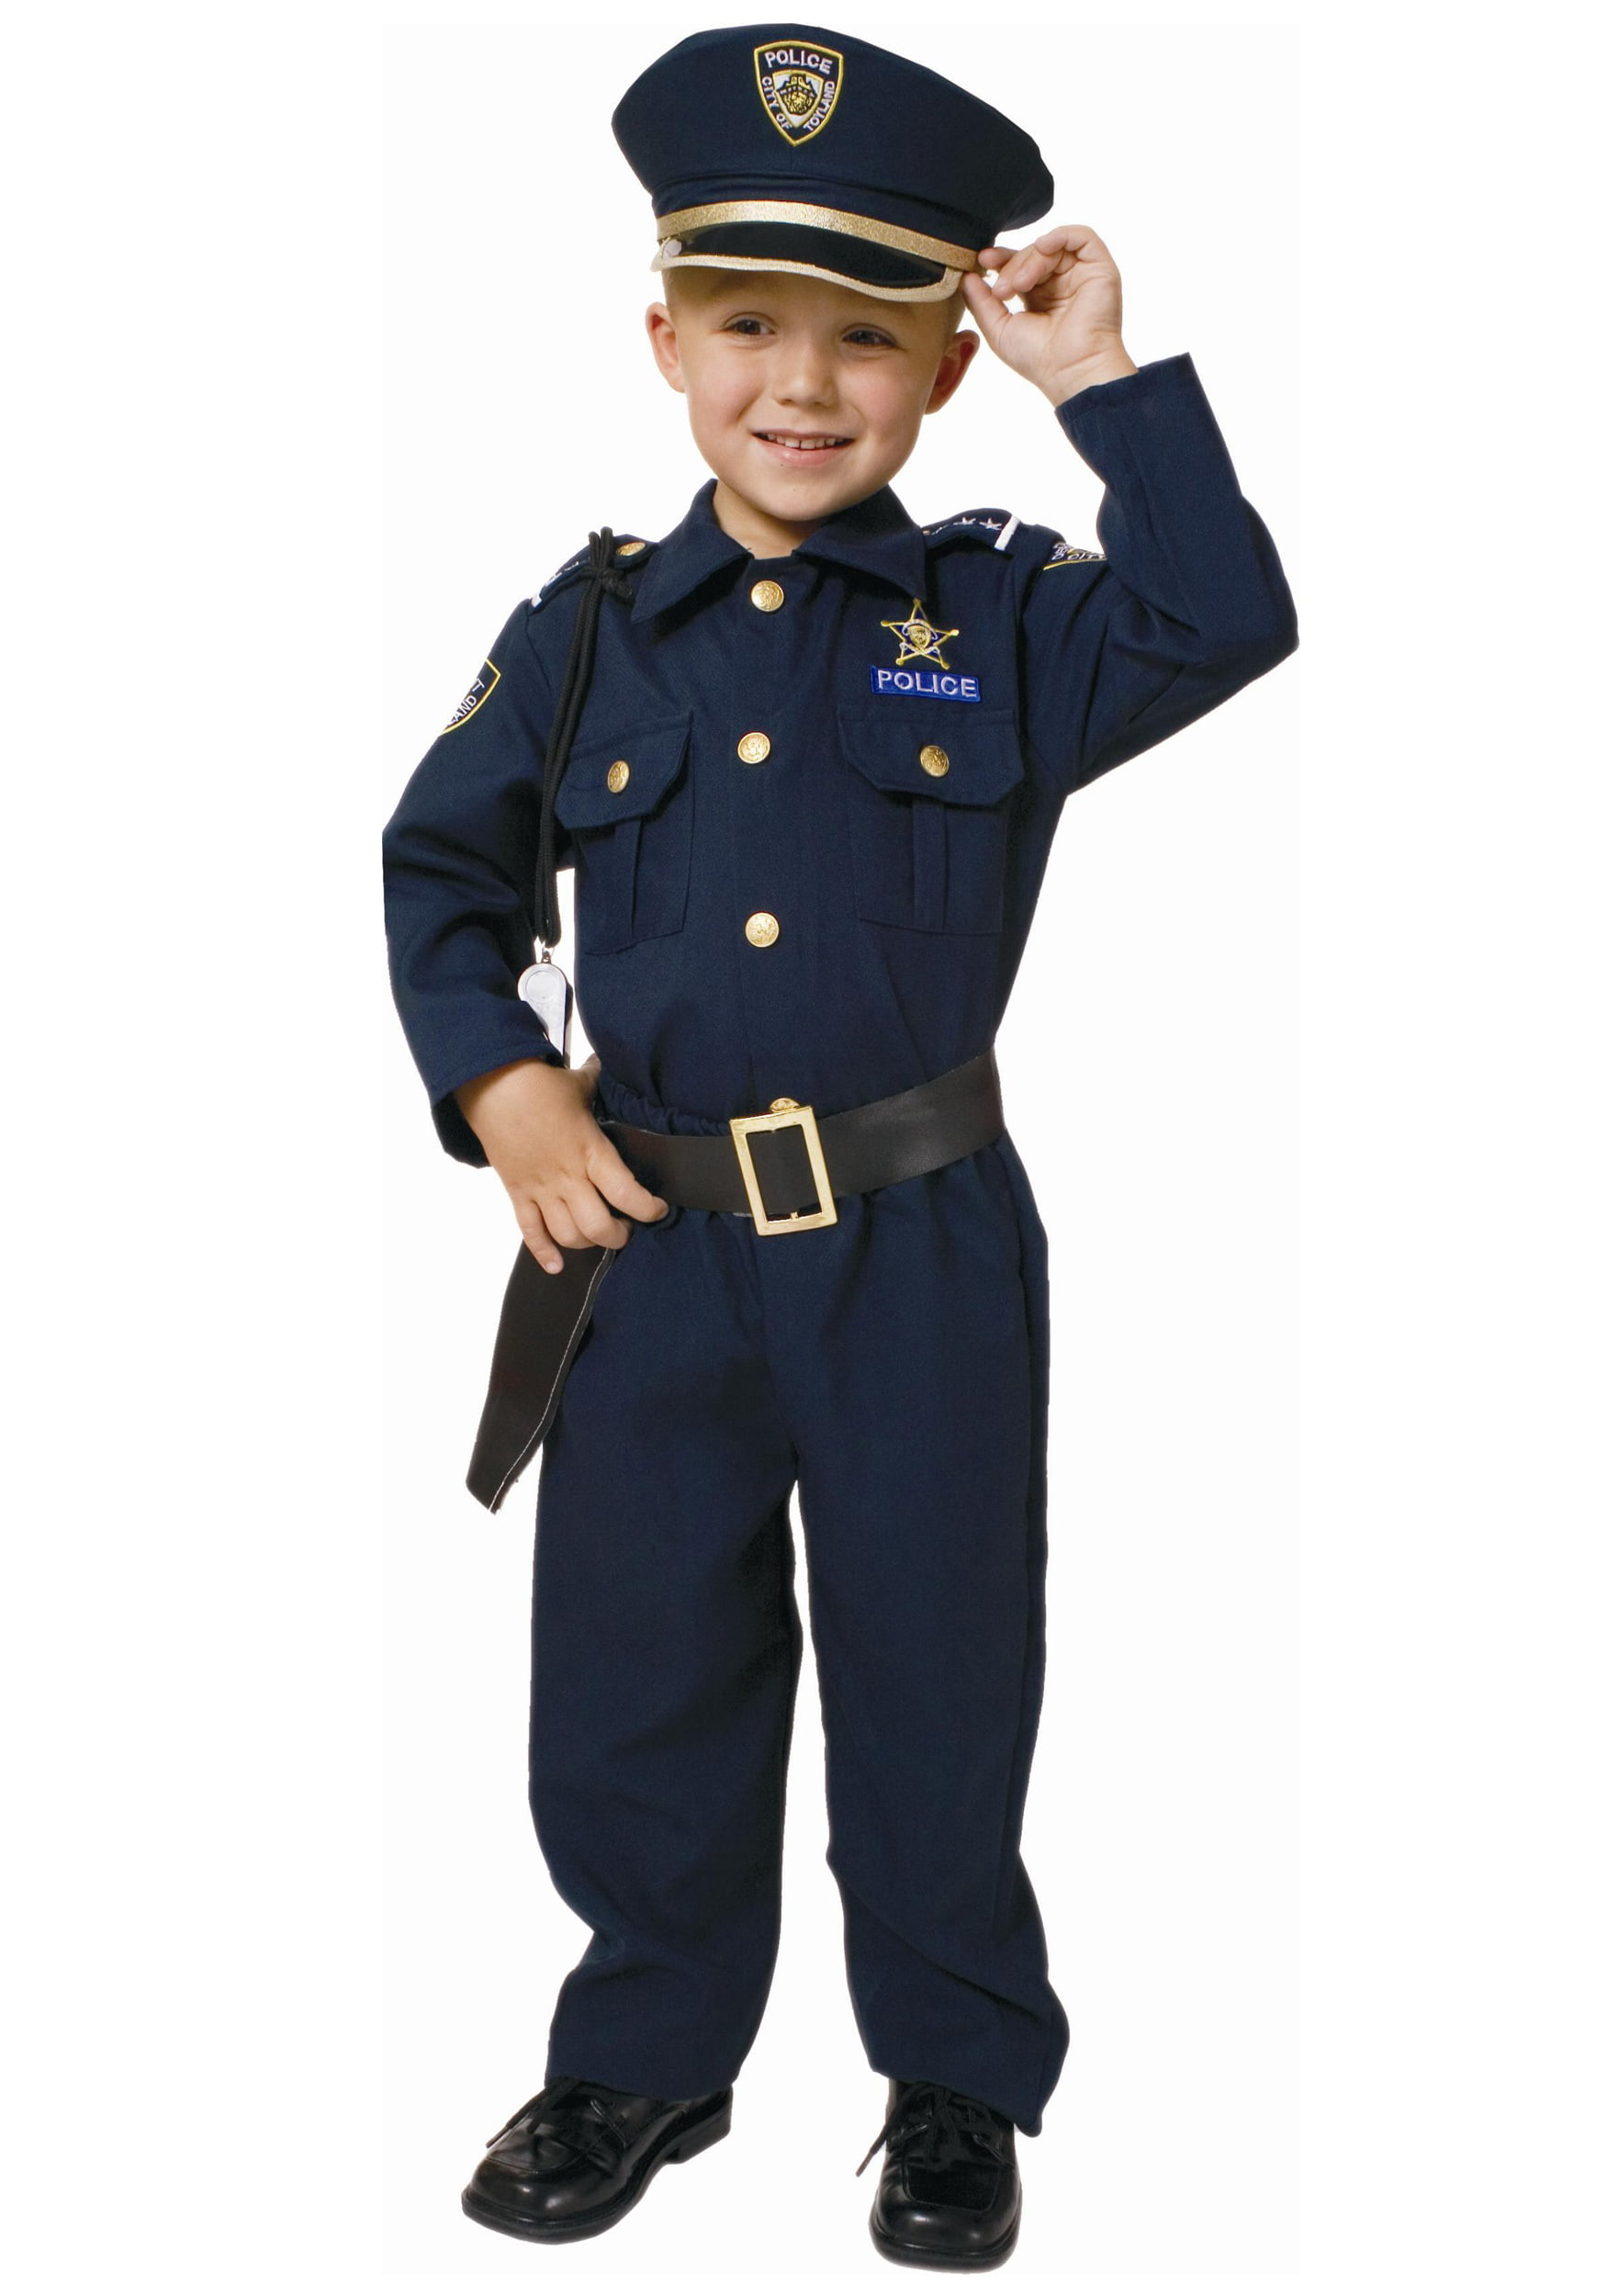 Child Deluxe Police Officer Costume by Dress Up America